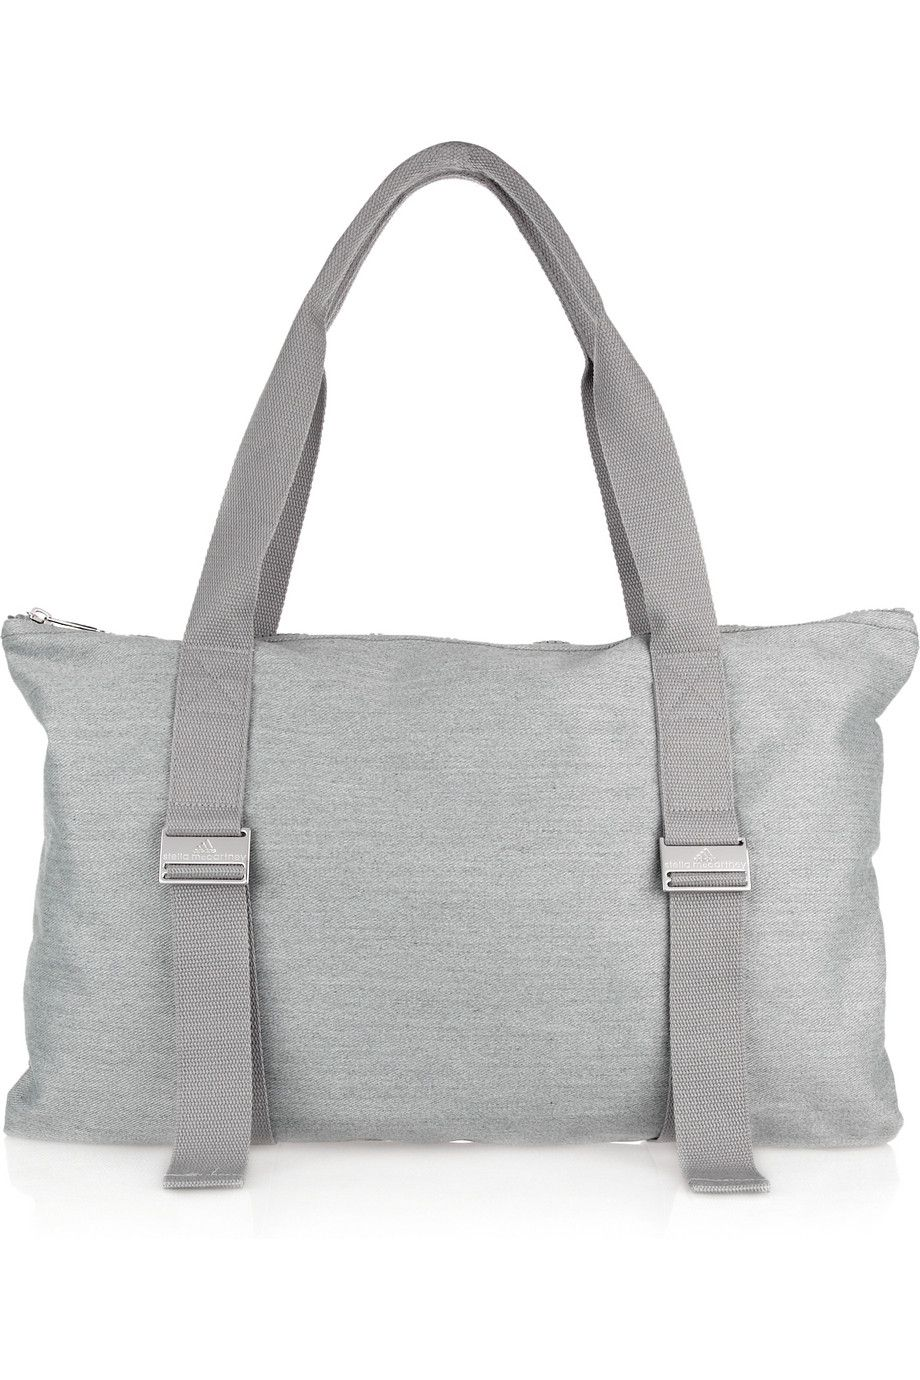 23d9de36d76 perfect for running errands   yoga canvas bag   adidas by stella mccartney